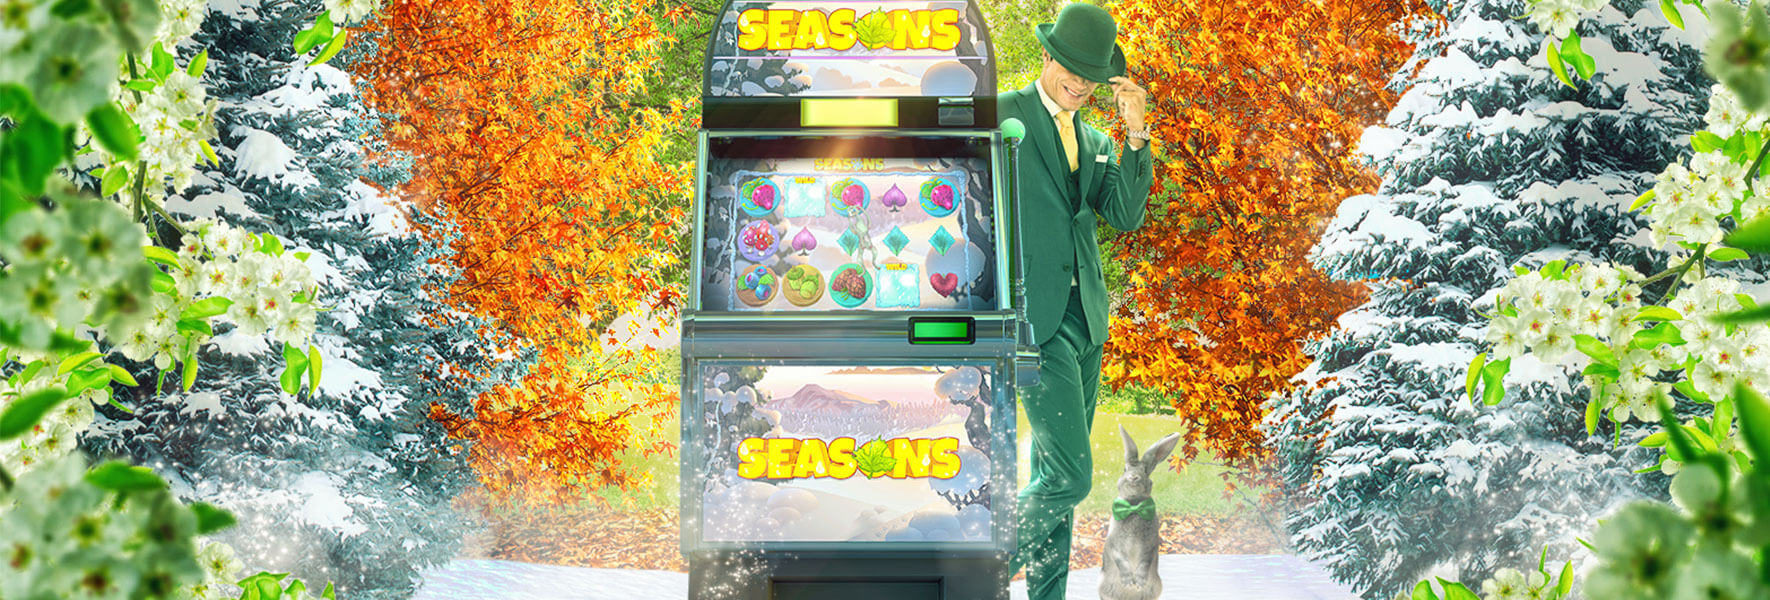 An image of the Seasons promotion at Mr Green